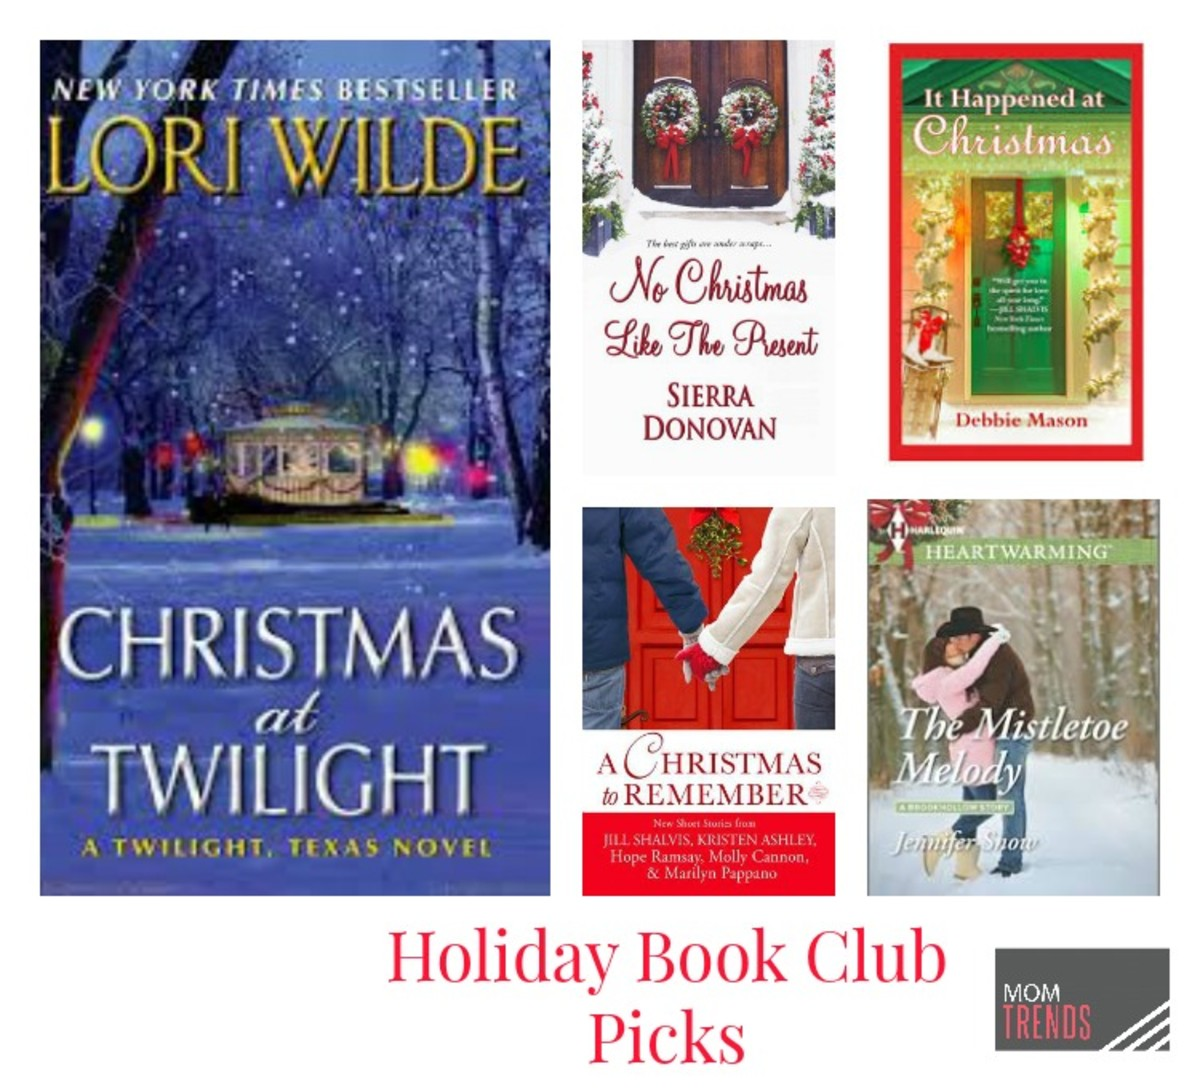 Holiday Book Club Picks